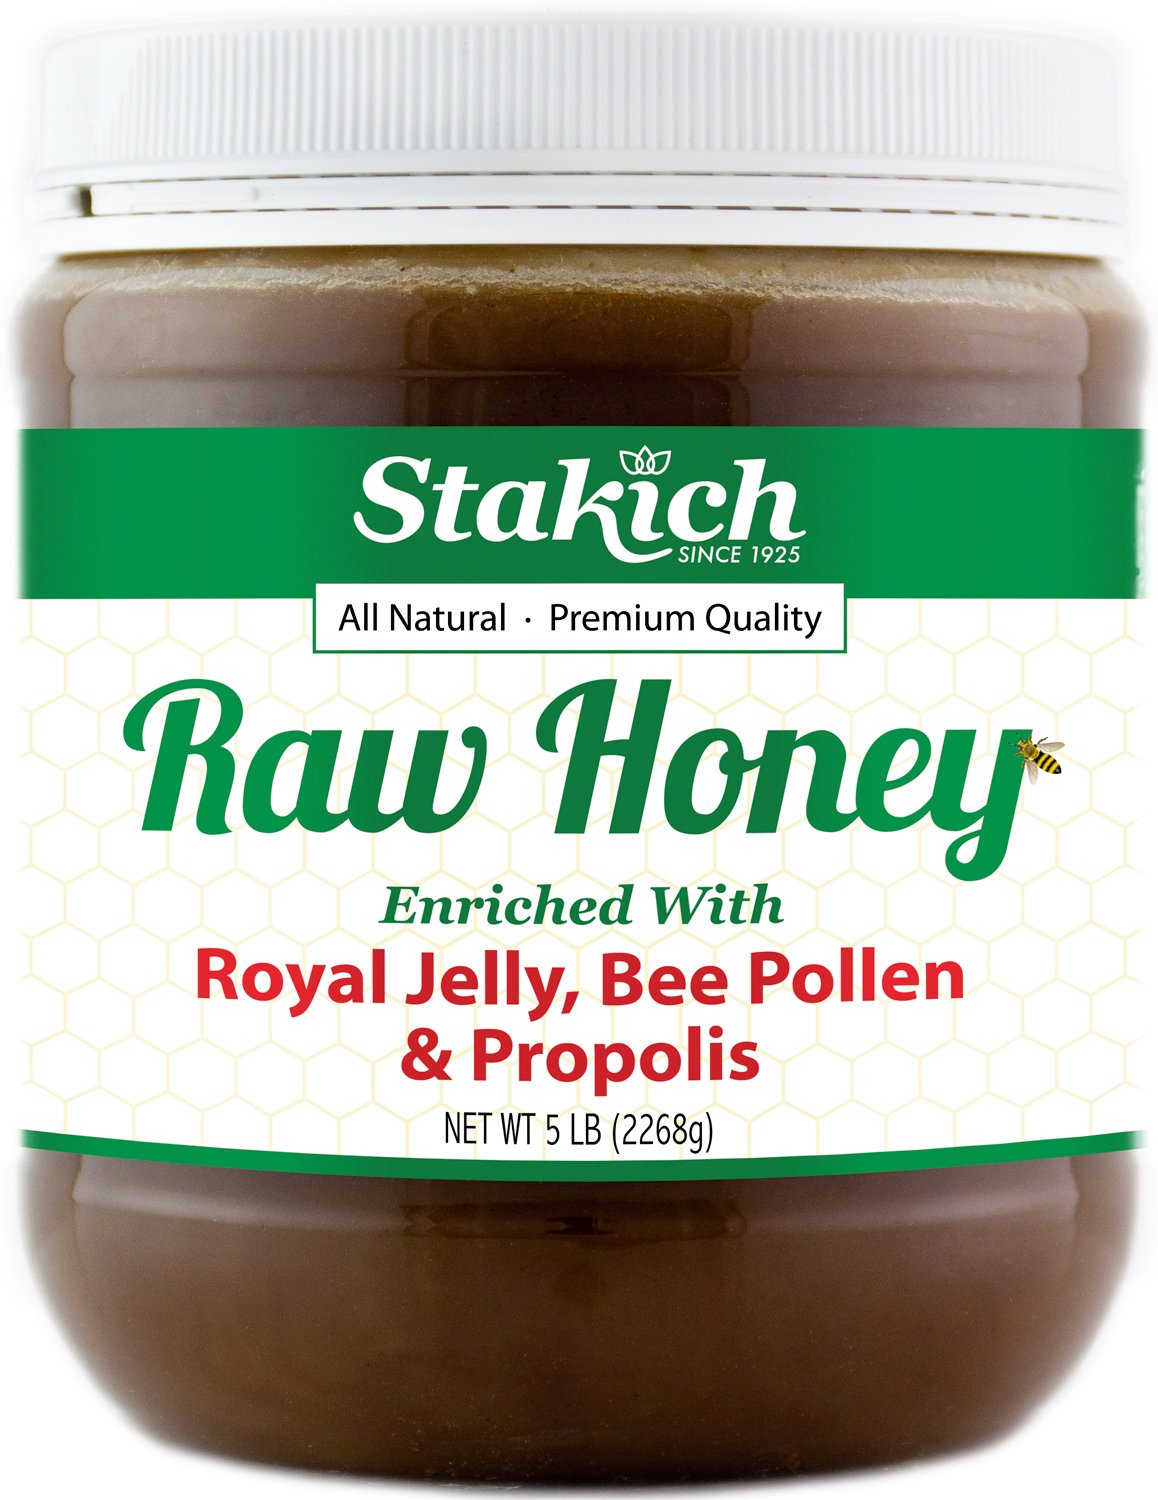 Stakich ROYAL JELLY BEE POLLEN PROPOLIS Enriched RAW HONEY - 100% Pure, Unprocessed, Unheated - 5 lb (80 oz)